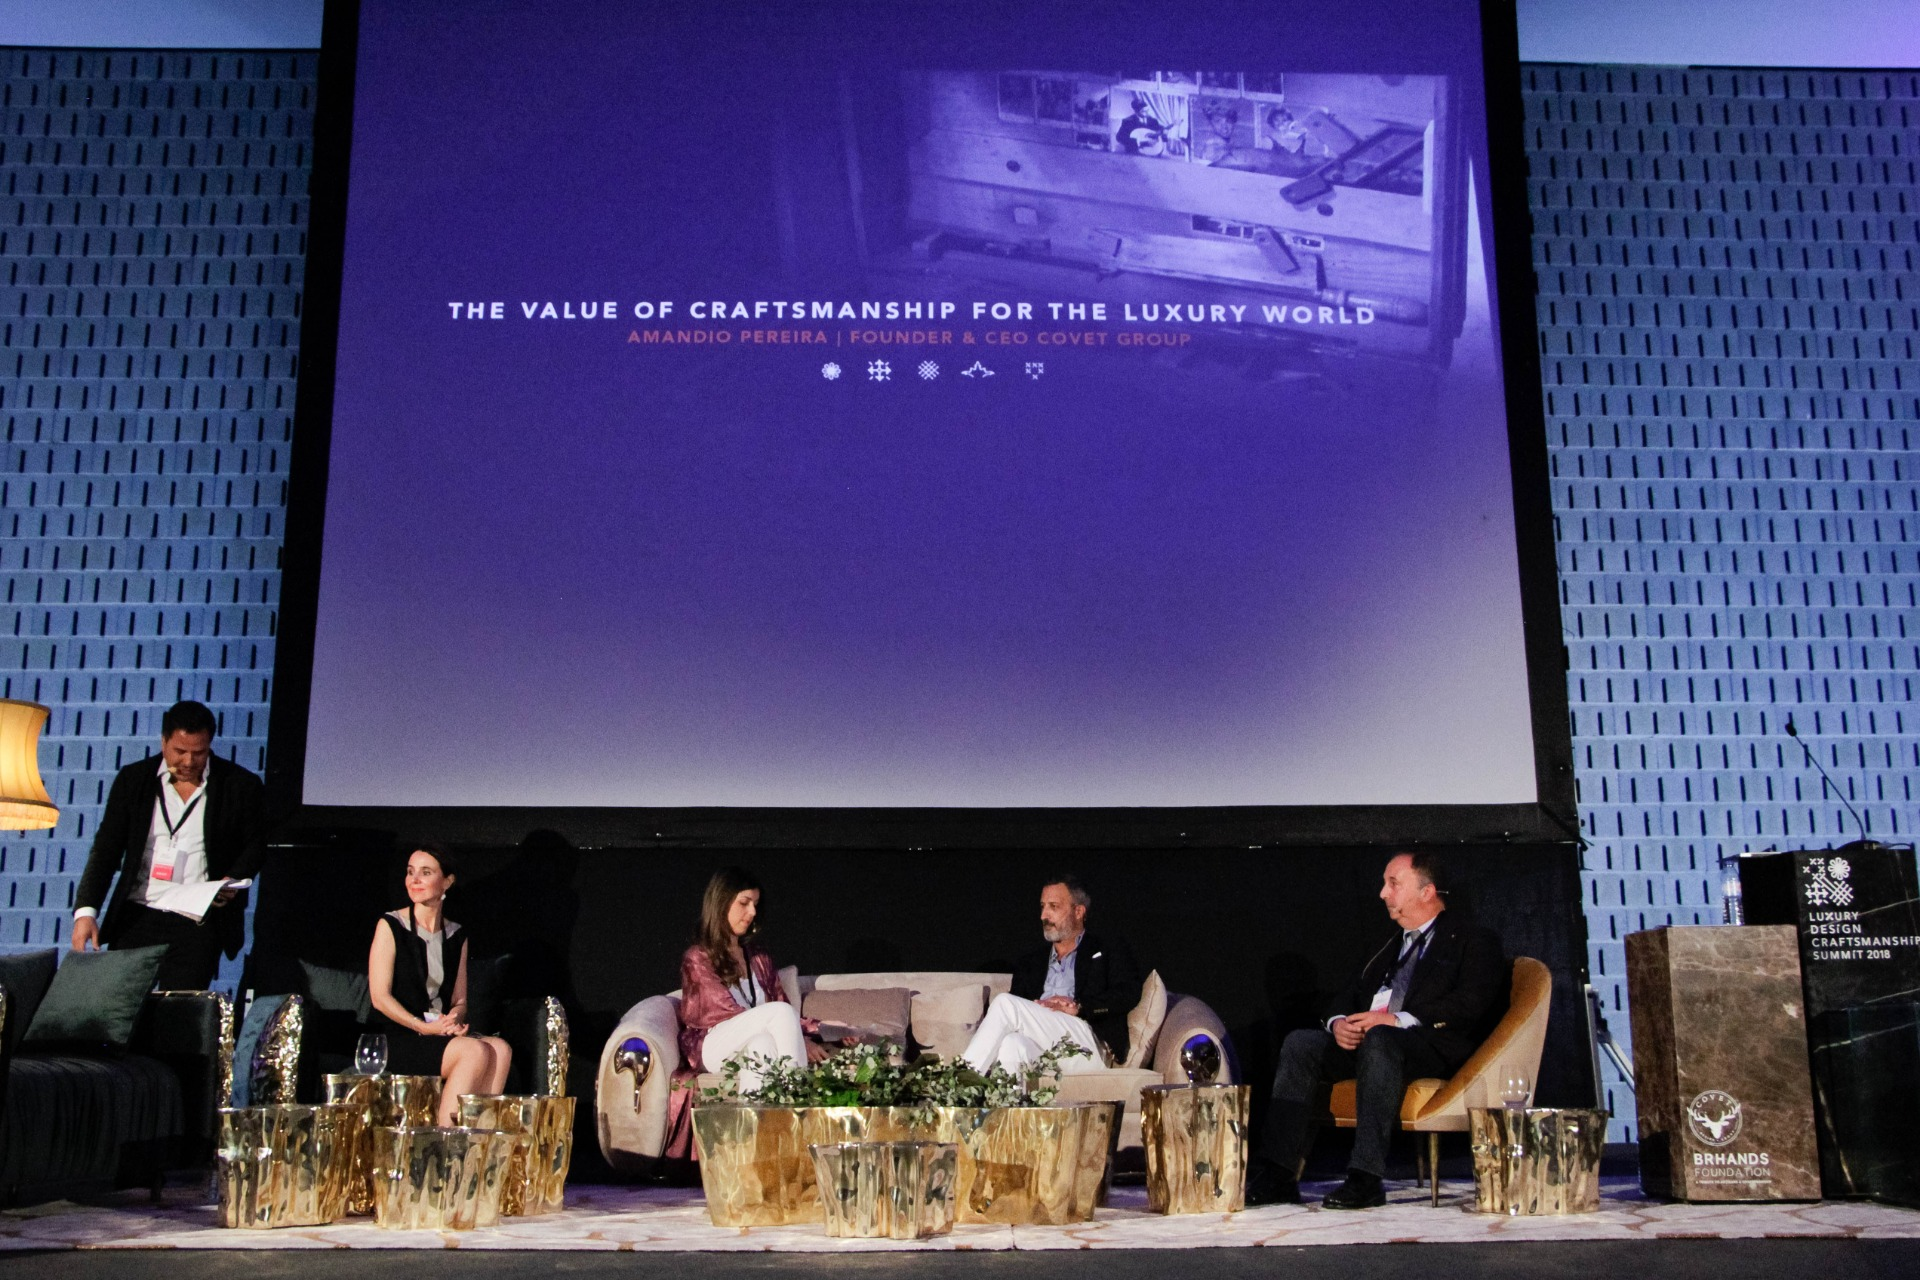 Celebrating Craftsmanship The Luxury Design+Craftsmanship Summit 2019 (5) luxury design Presenting Summit 2019 – An Event Of Luxury Design and Craftmanship Celebrating Craftsmanship The Luxury DesignCraftsmanship Summit 2019 5